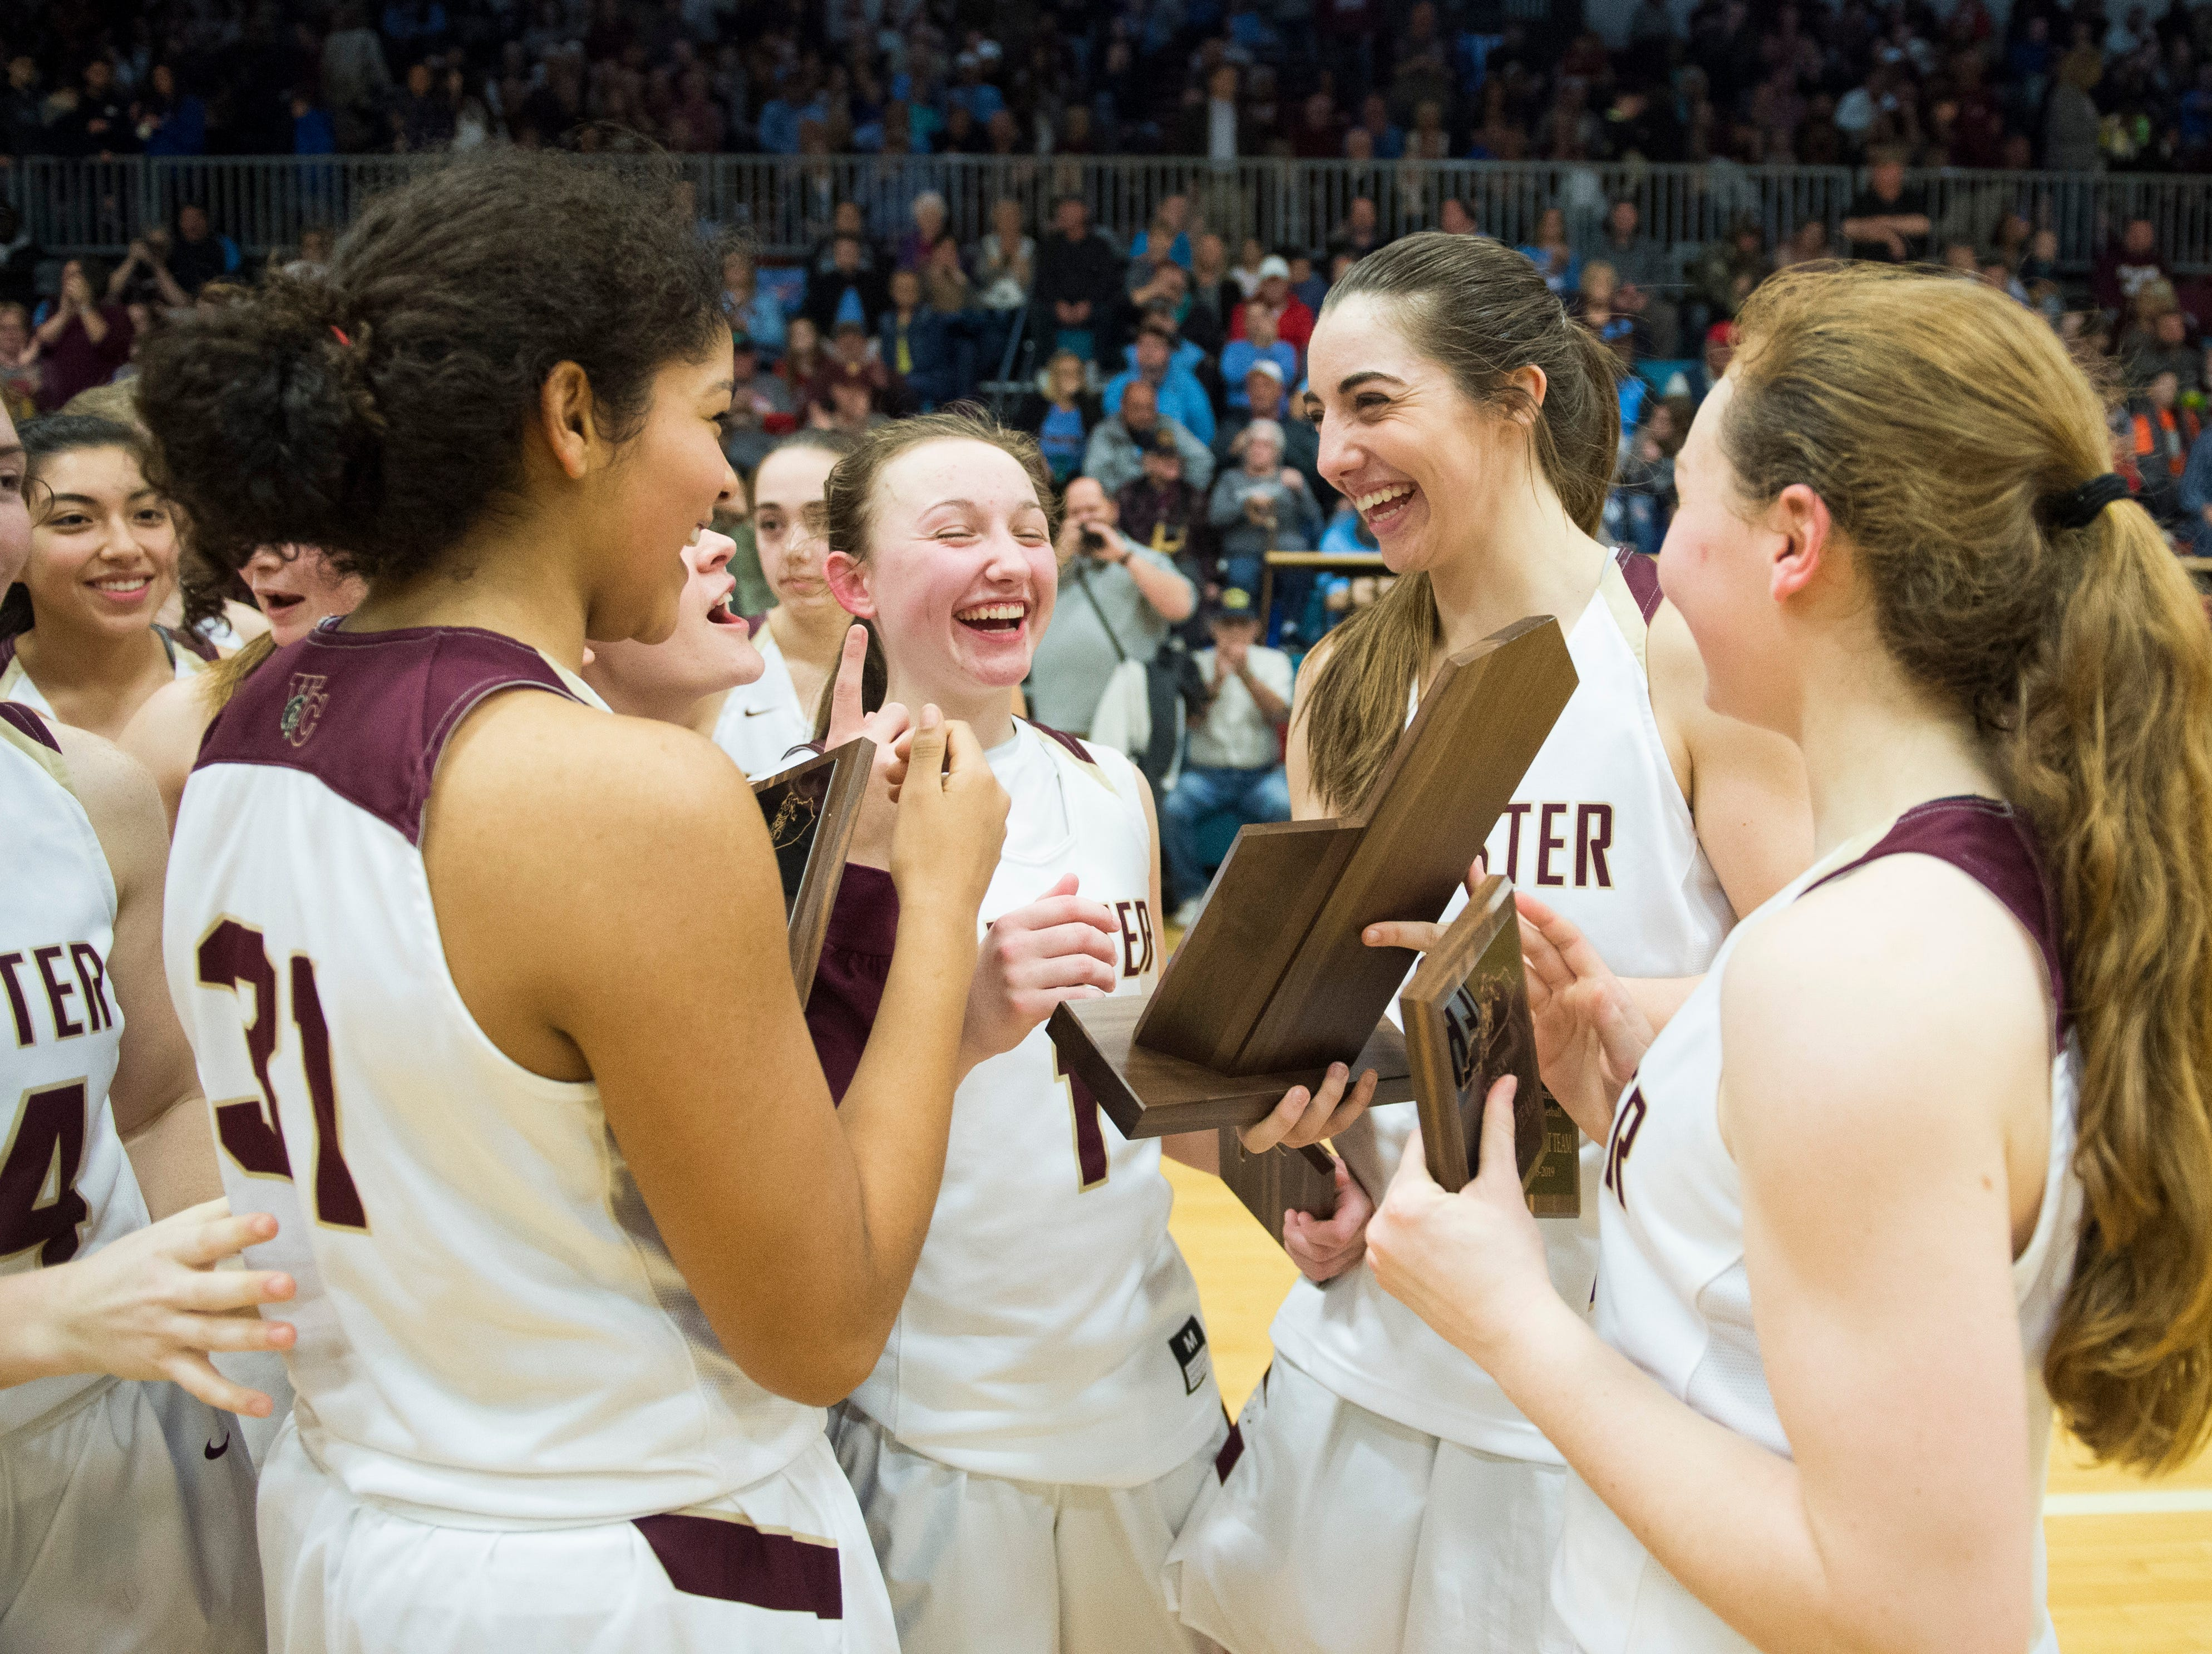 Webster County Lady Trojans celebrate after beating the Henderson County Lady Colonels in the 2019 Sixth District championship game at Union County High School Thursday, Feb. 21, 2019.